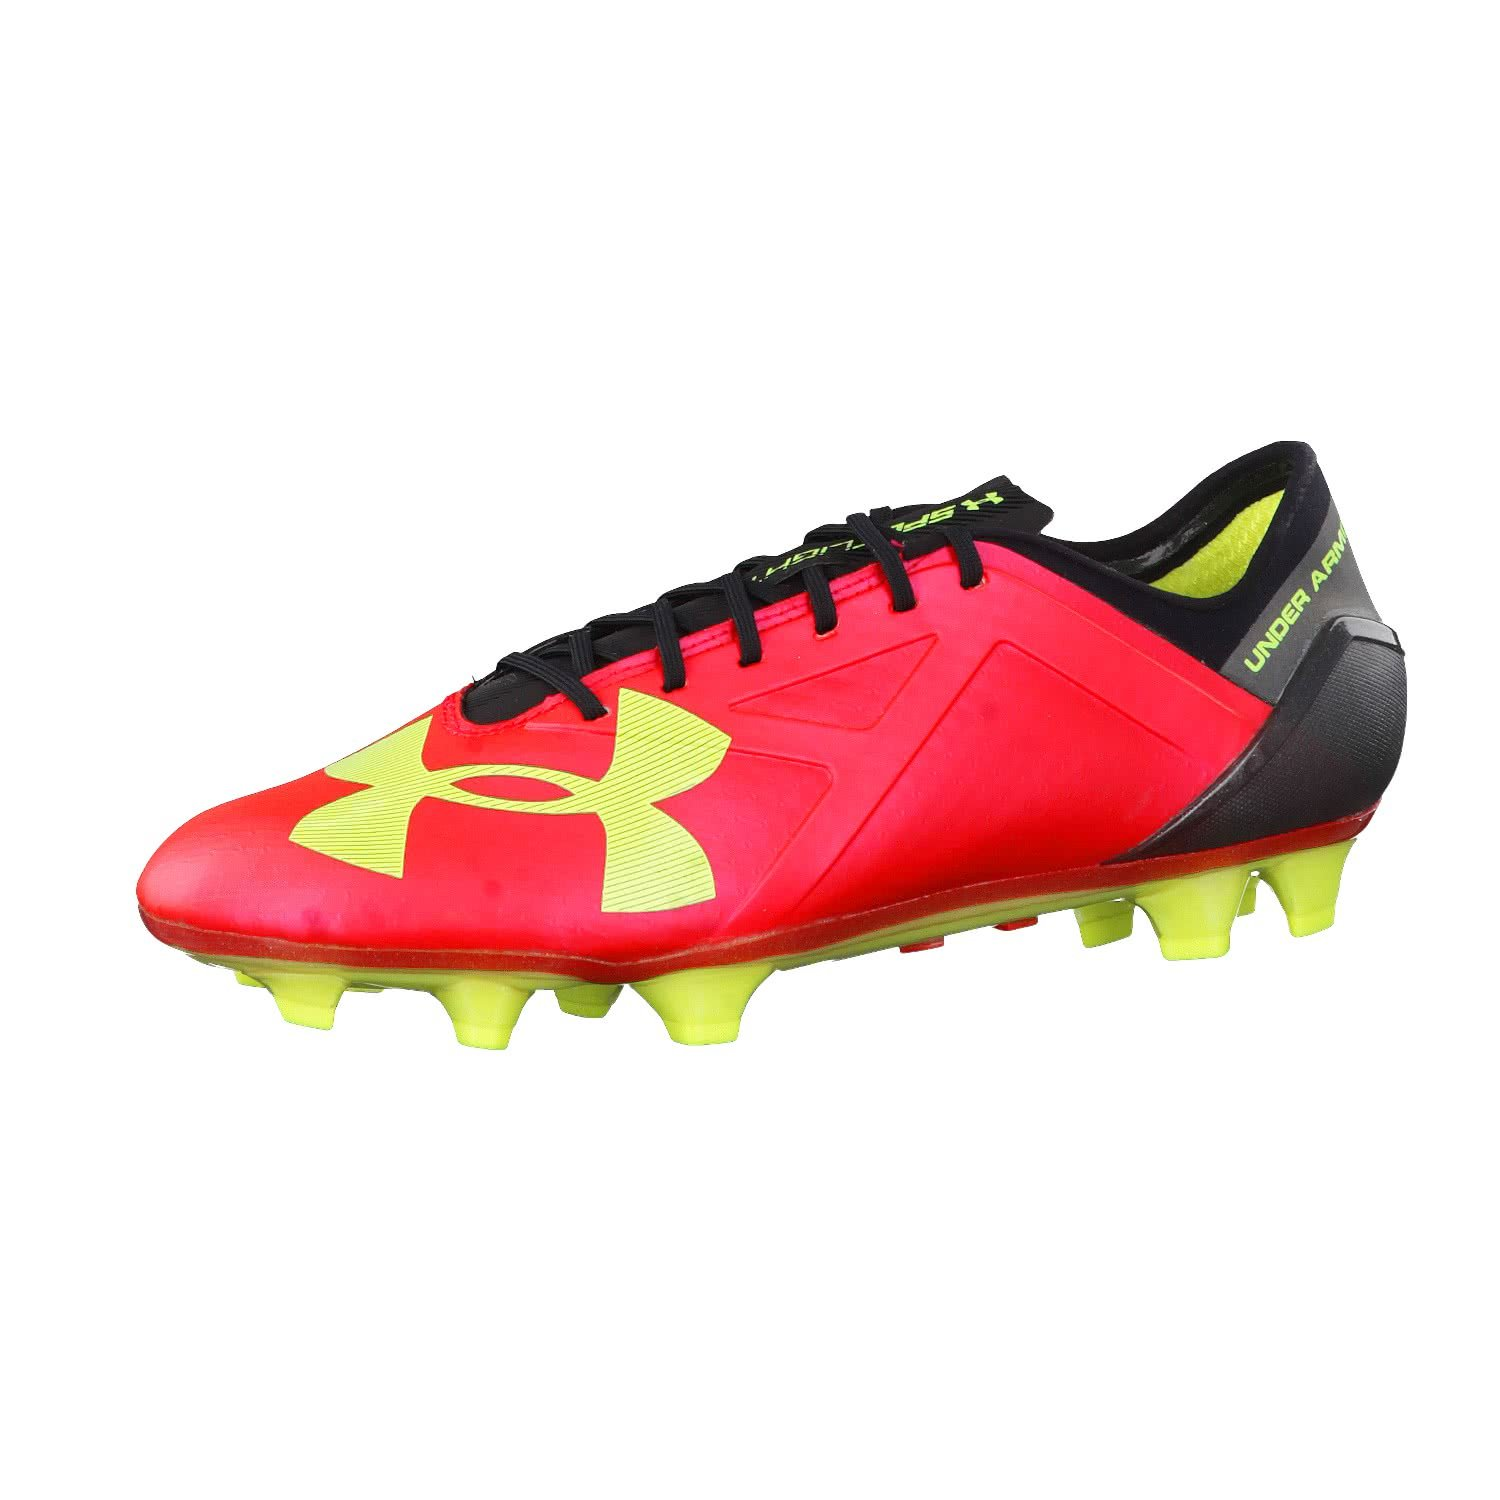 Under Armour メンズ B015D8K8FU 13 D(M) US|Rocket Red/ High-vis Yellow/ Black Rocket Red/ High-vis Yellow/ Black 13 D(M) US